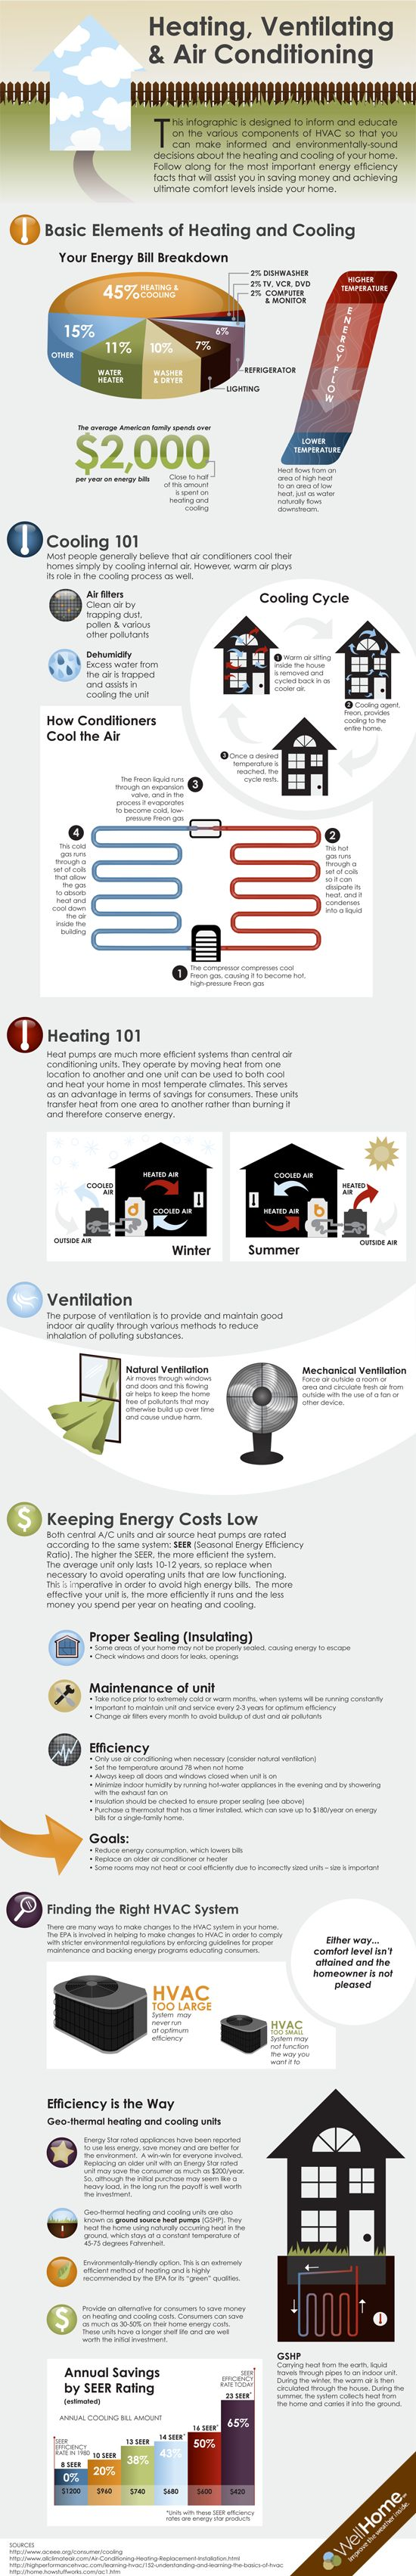 15 best images about hvac fun facts on pinterest for Best heating system for home